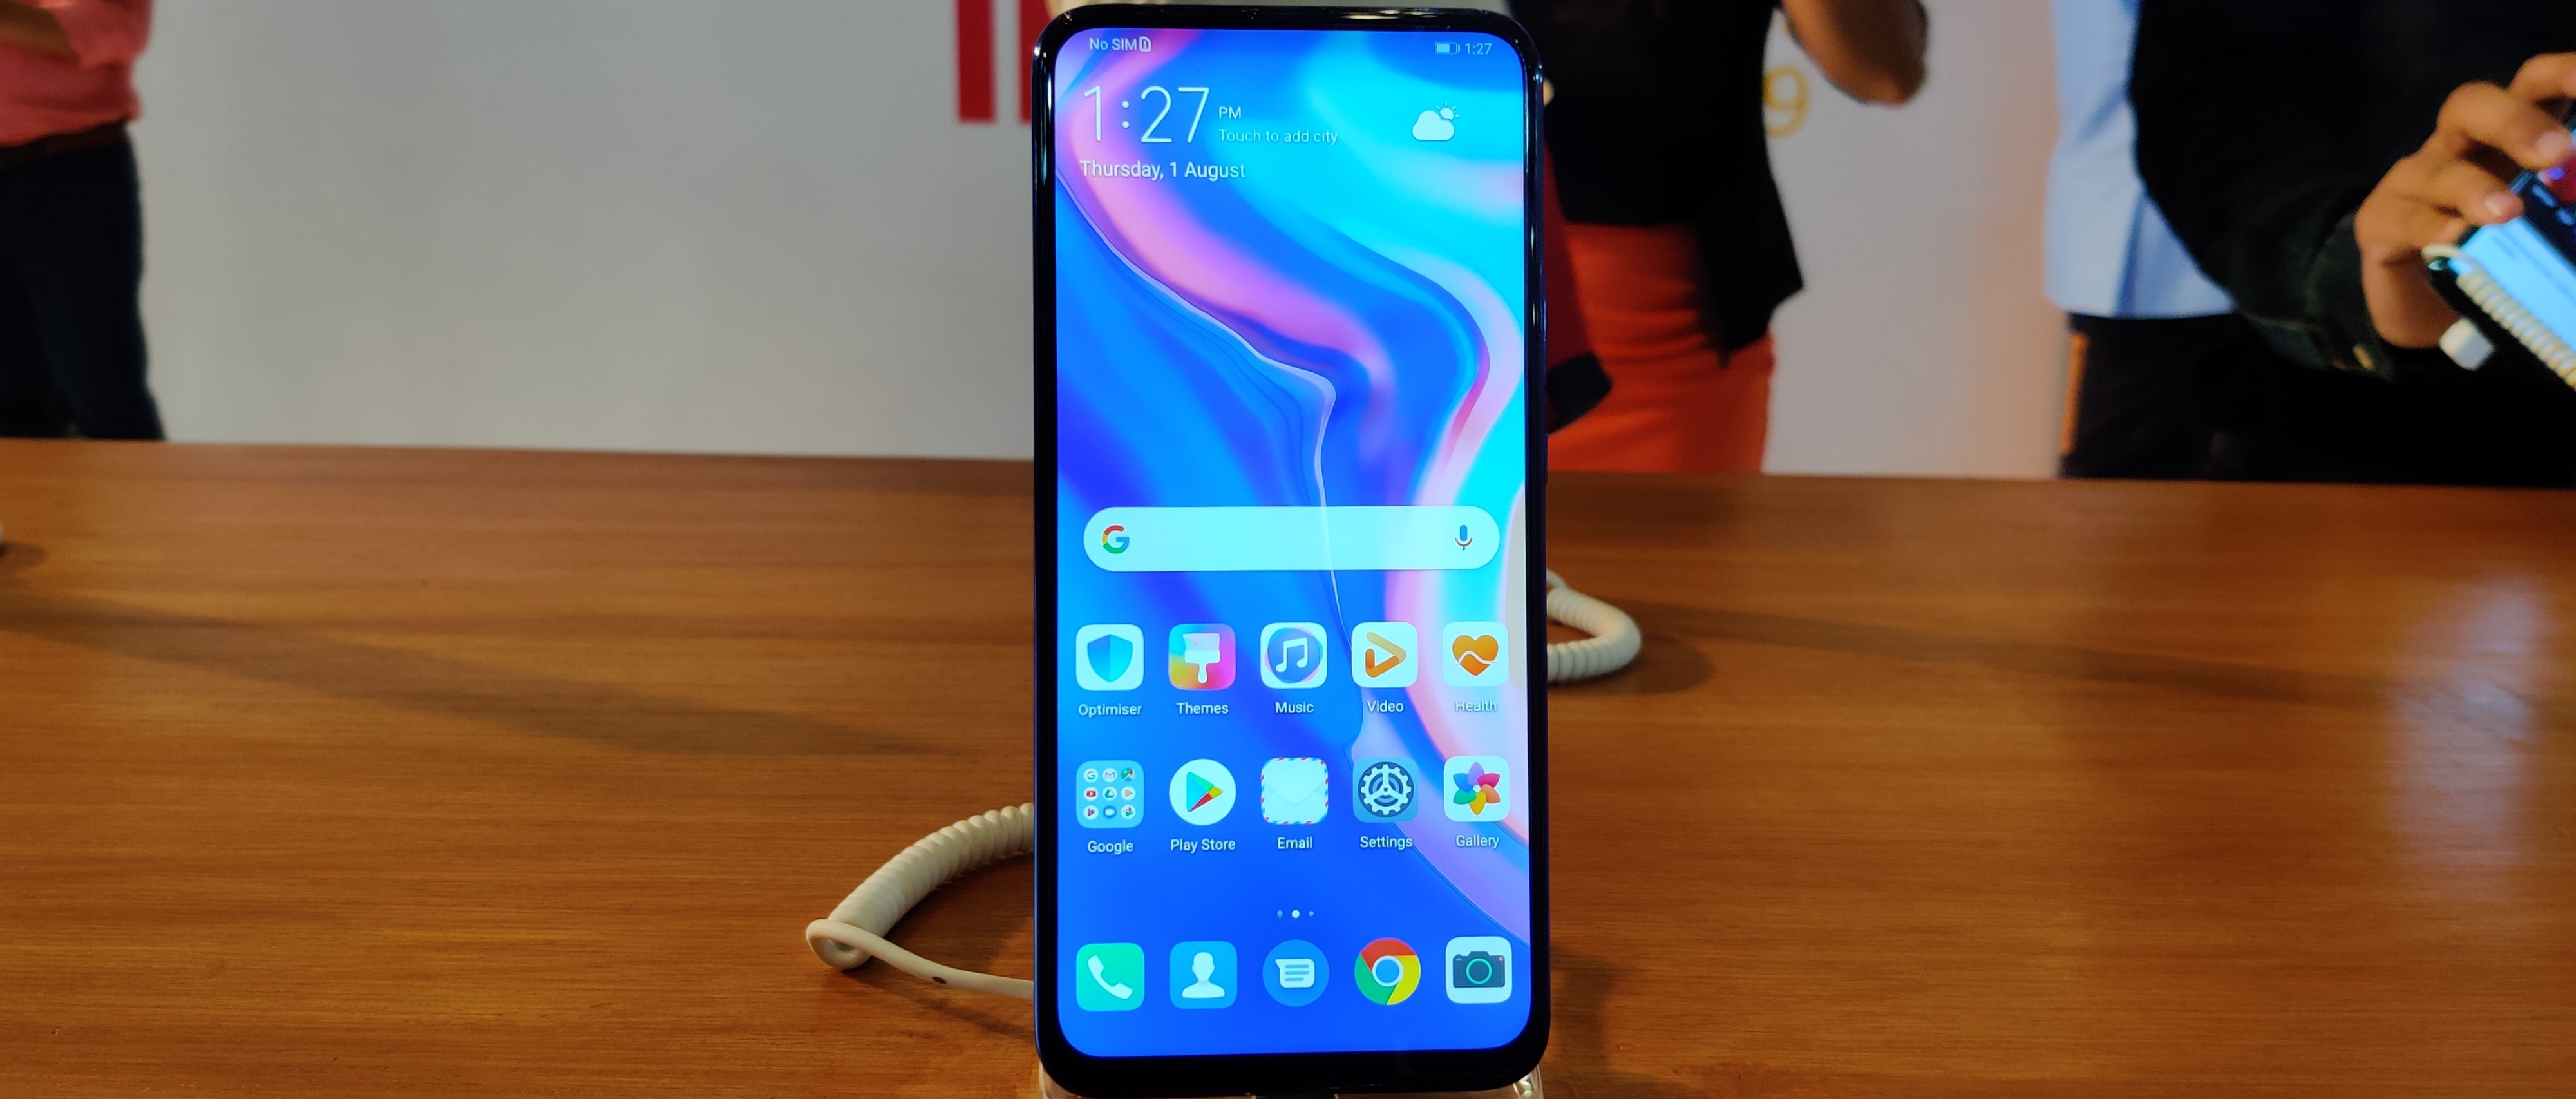 Hands on: Huawei Y9 Prime review | TechRadar